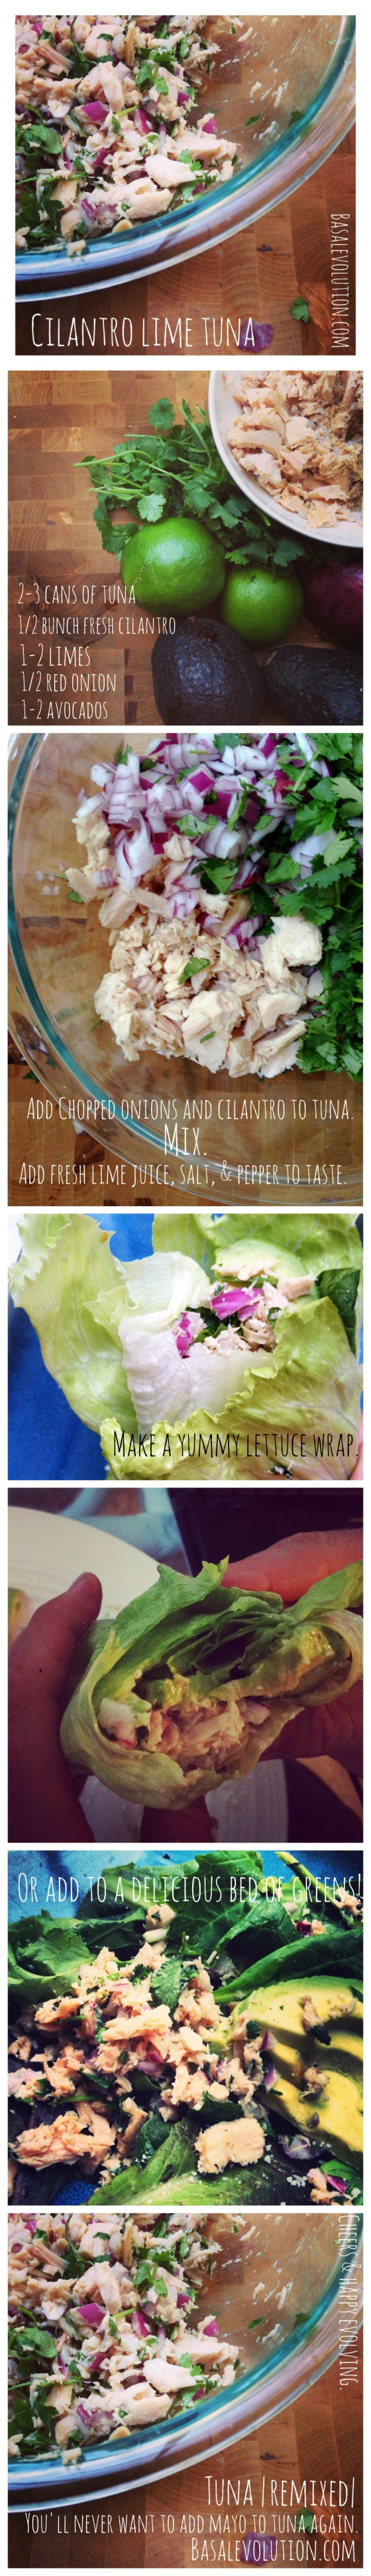 cilantro and lime tuna recipe